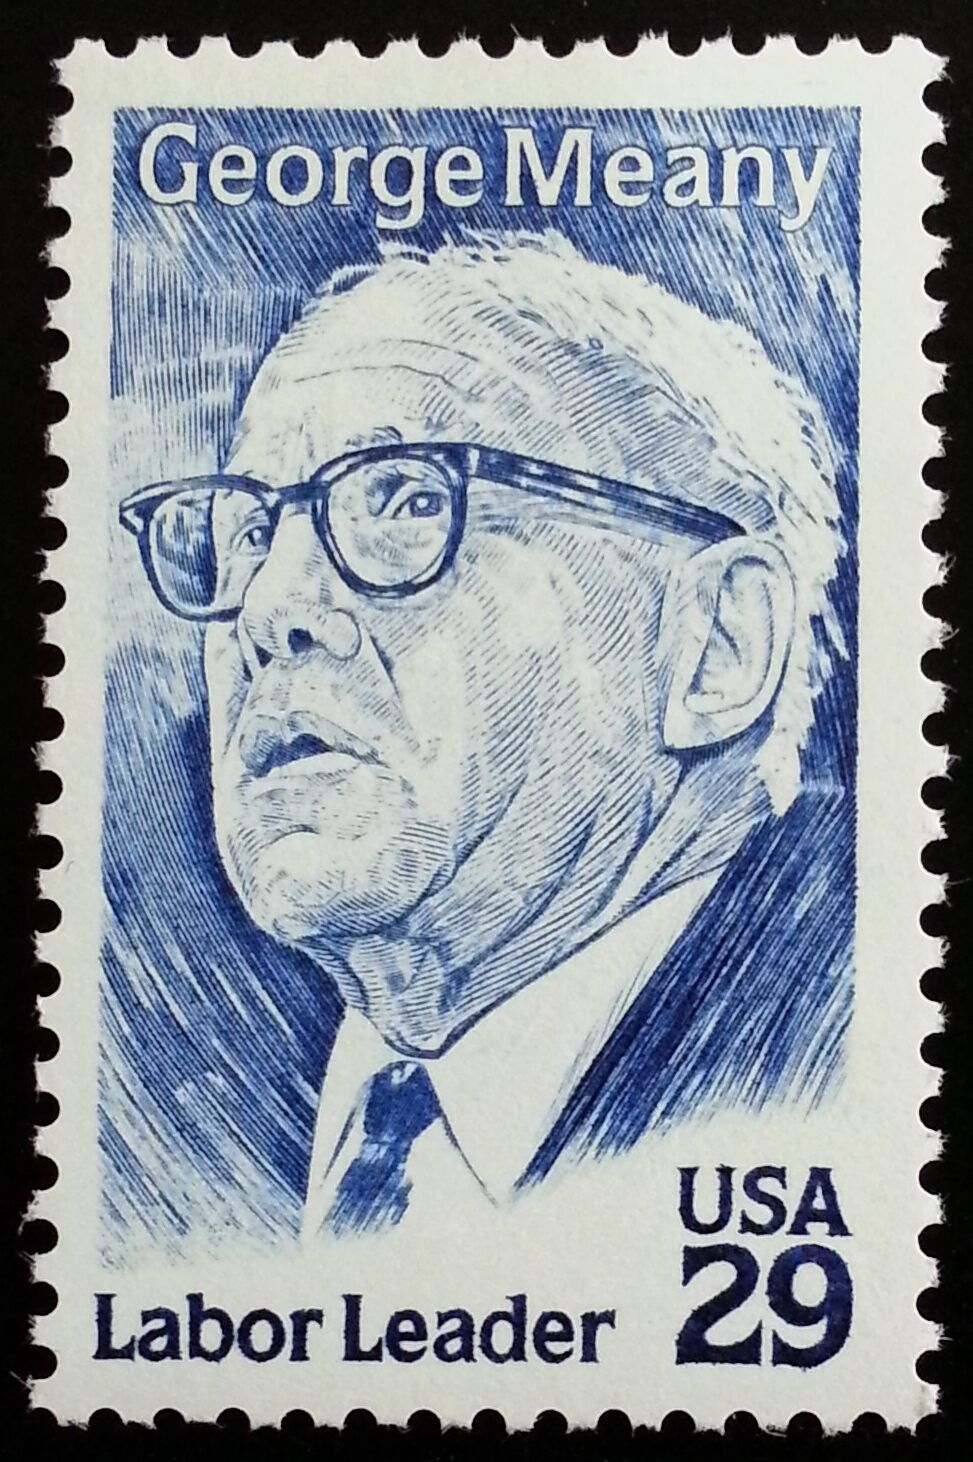 1994 29c George Meany, Labor Leader Scott 2848 Mint F/V